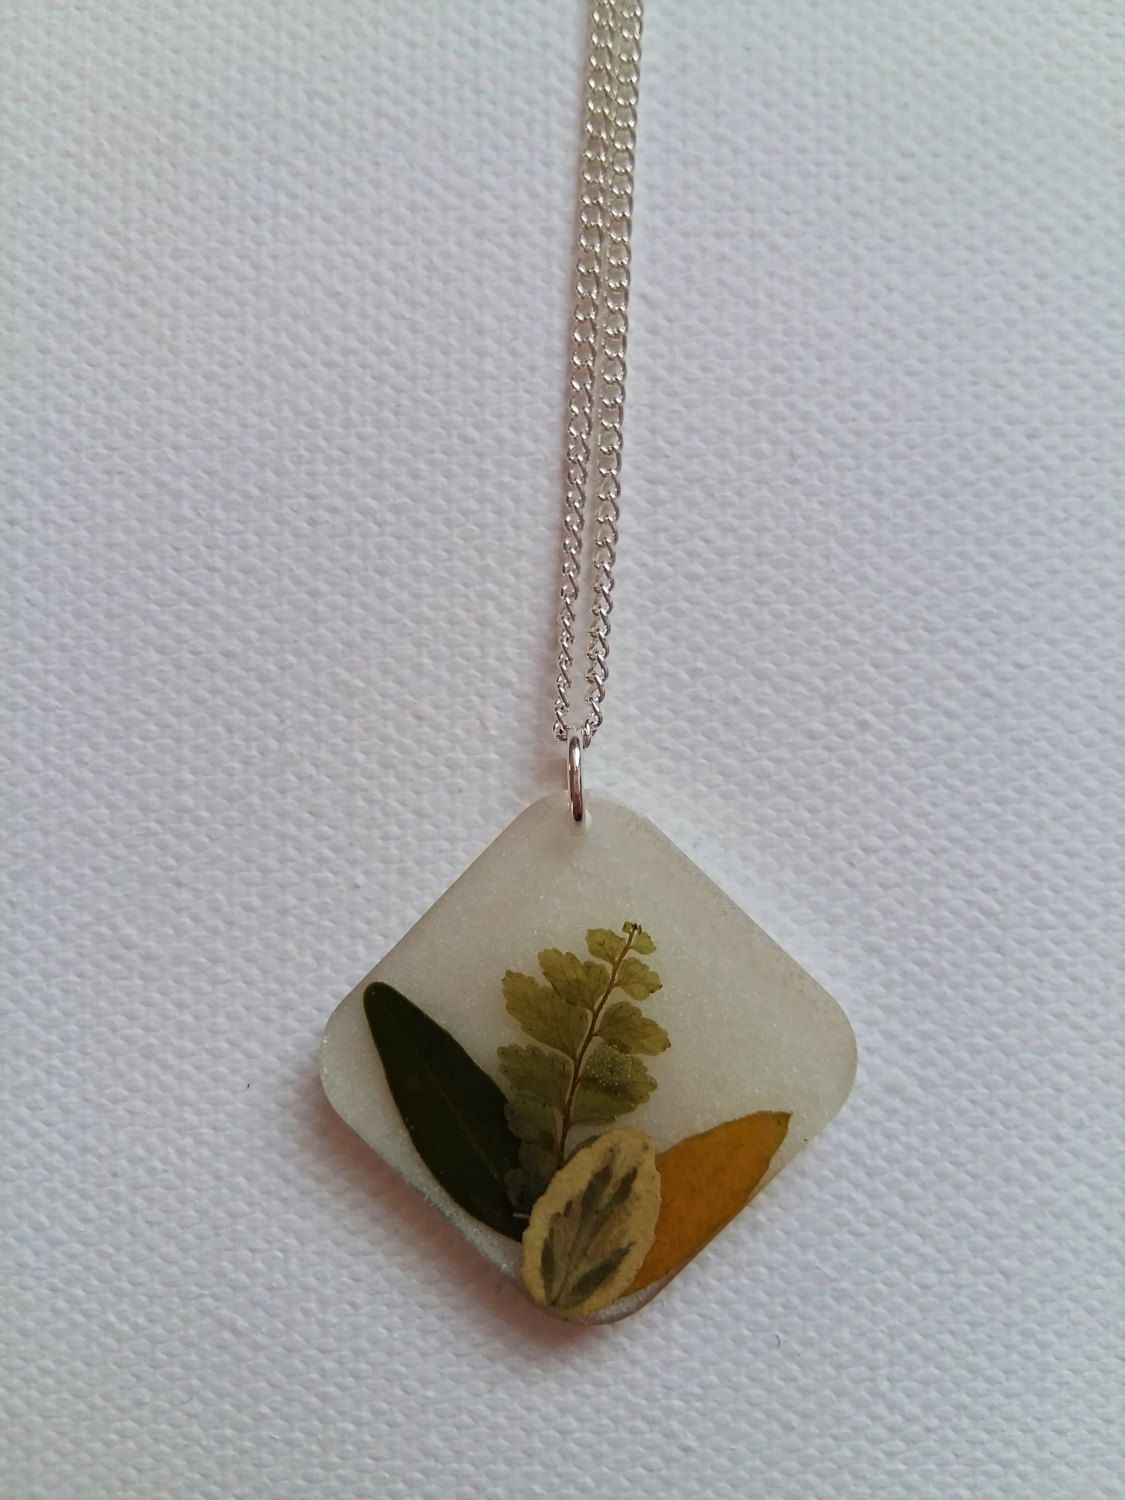 bunch of dried leaves resin necklace / handmade jewelry / nature